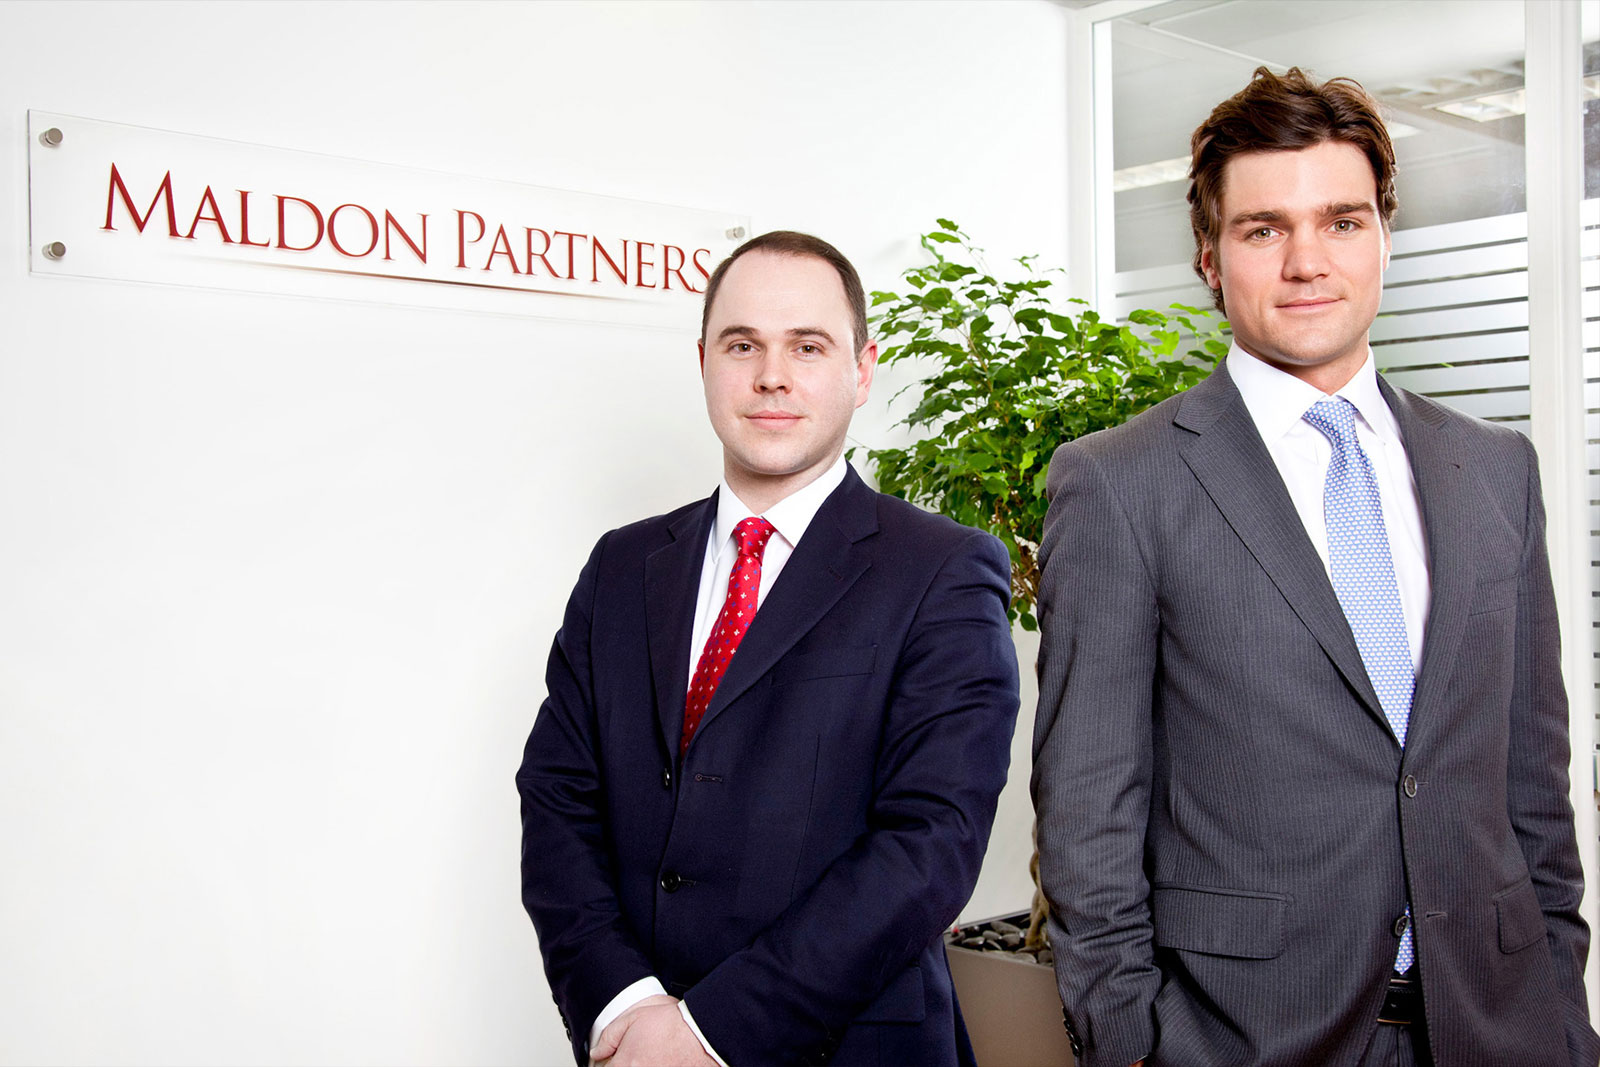 Maldon Partners: Portraits